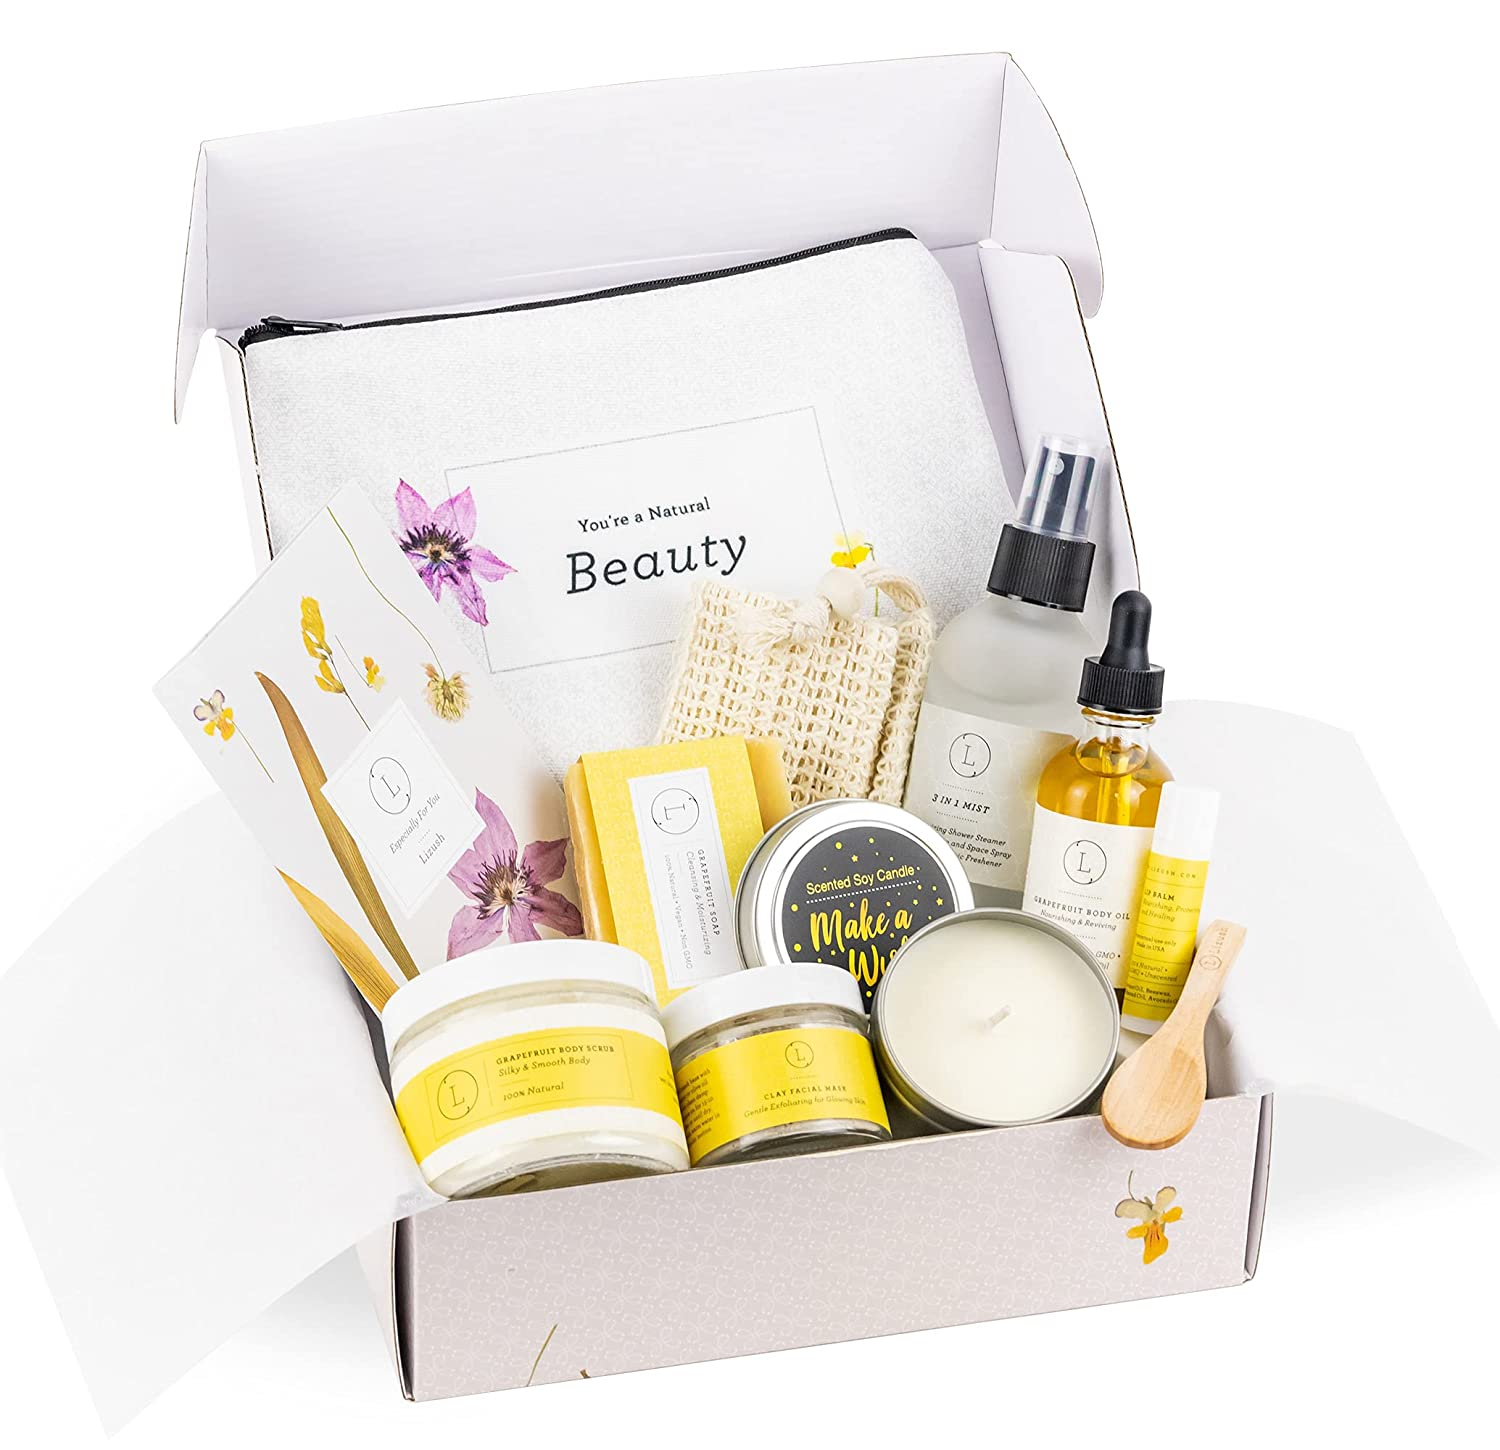 Personalized Spa Gift Set Relaxation Citrus Basket Care Max Ranking TOP7 68% OFF Packag